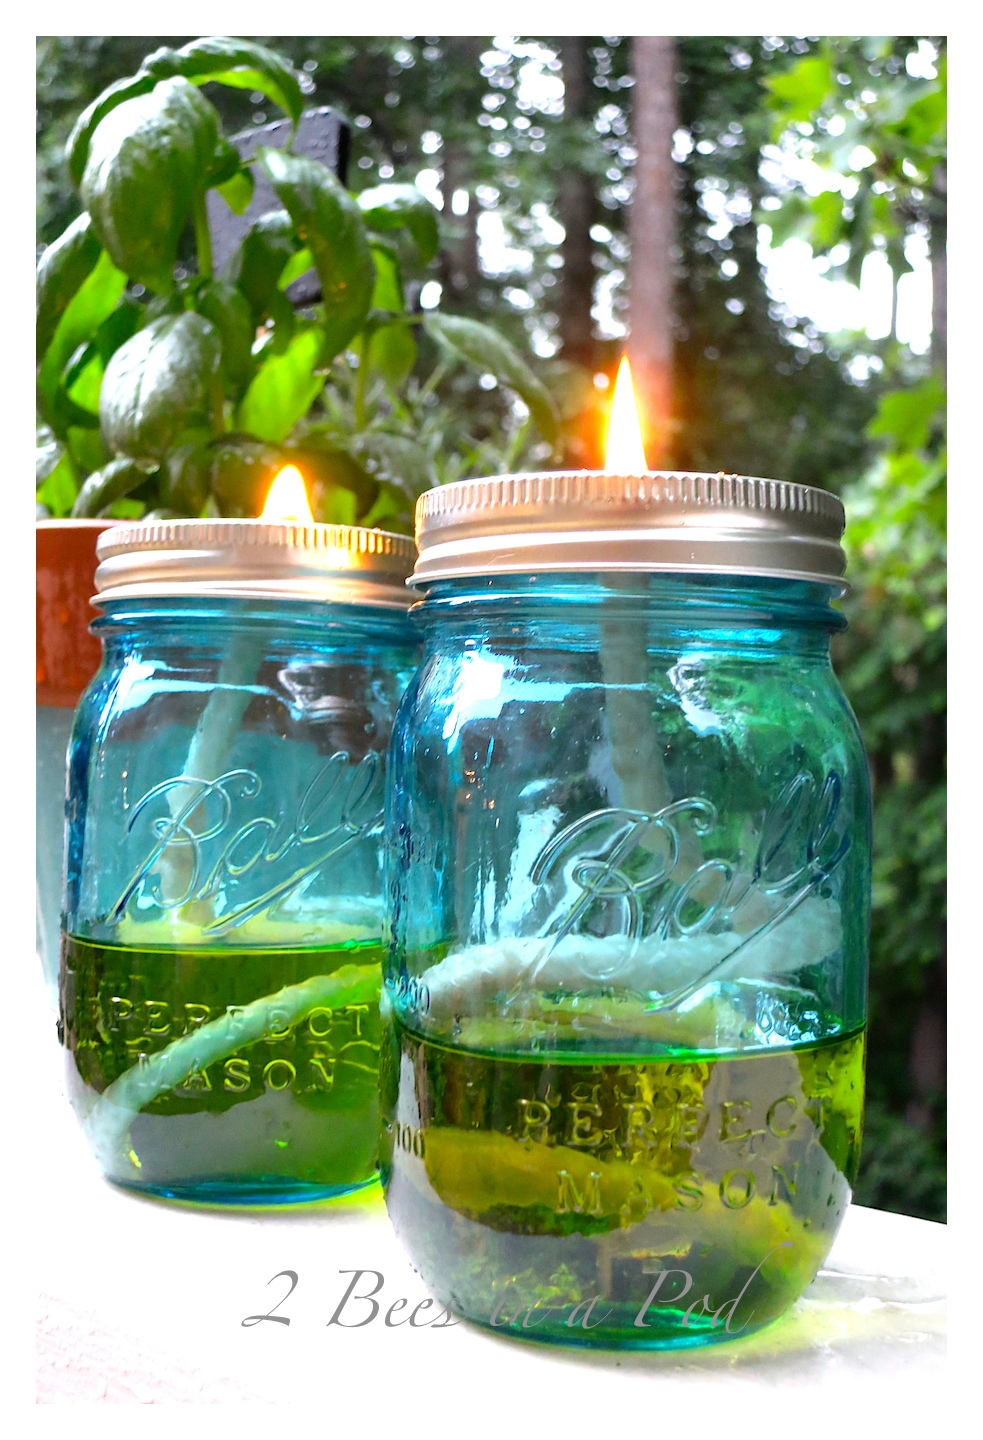 DIY Mason Jar Citronella Oil Lamp - takes just minutes to make